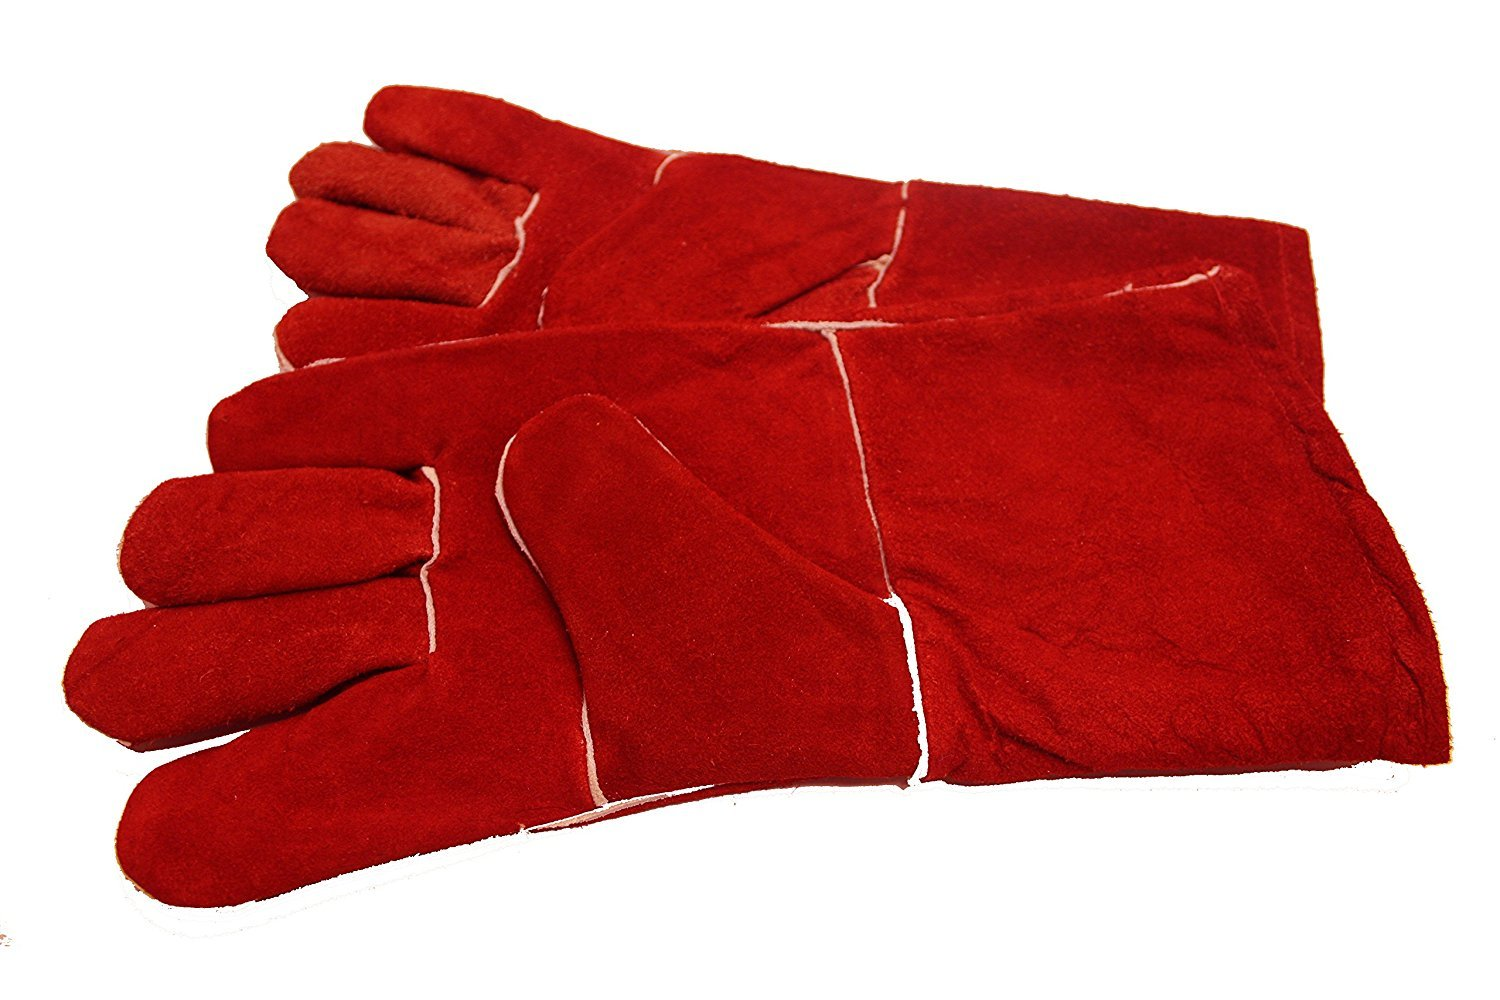 DSYJ Gloves High Temperature Stove Long Lined Welders Gauntlets Generic